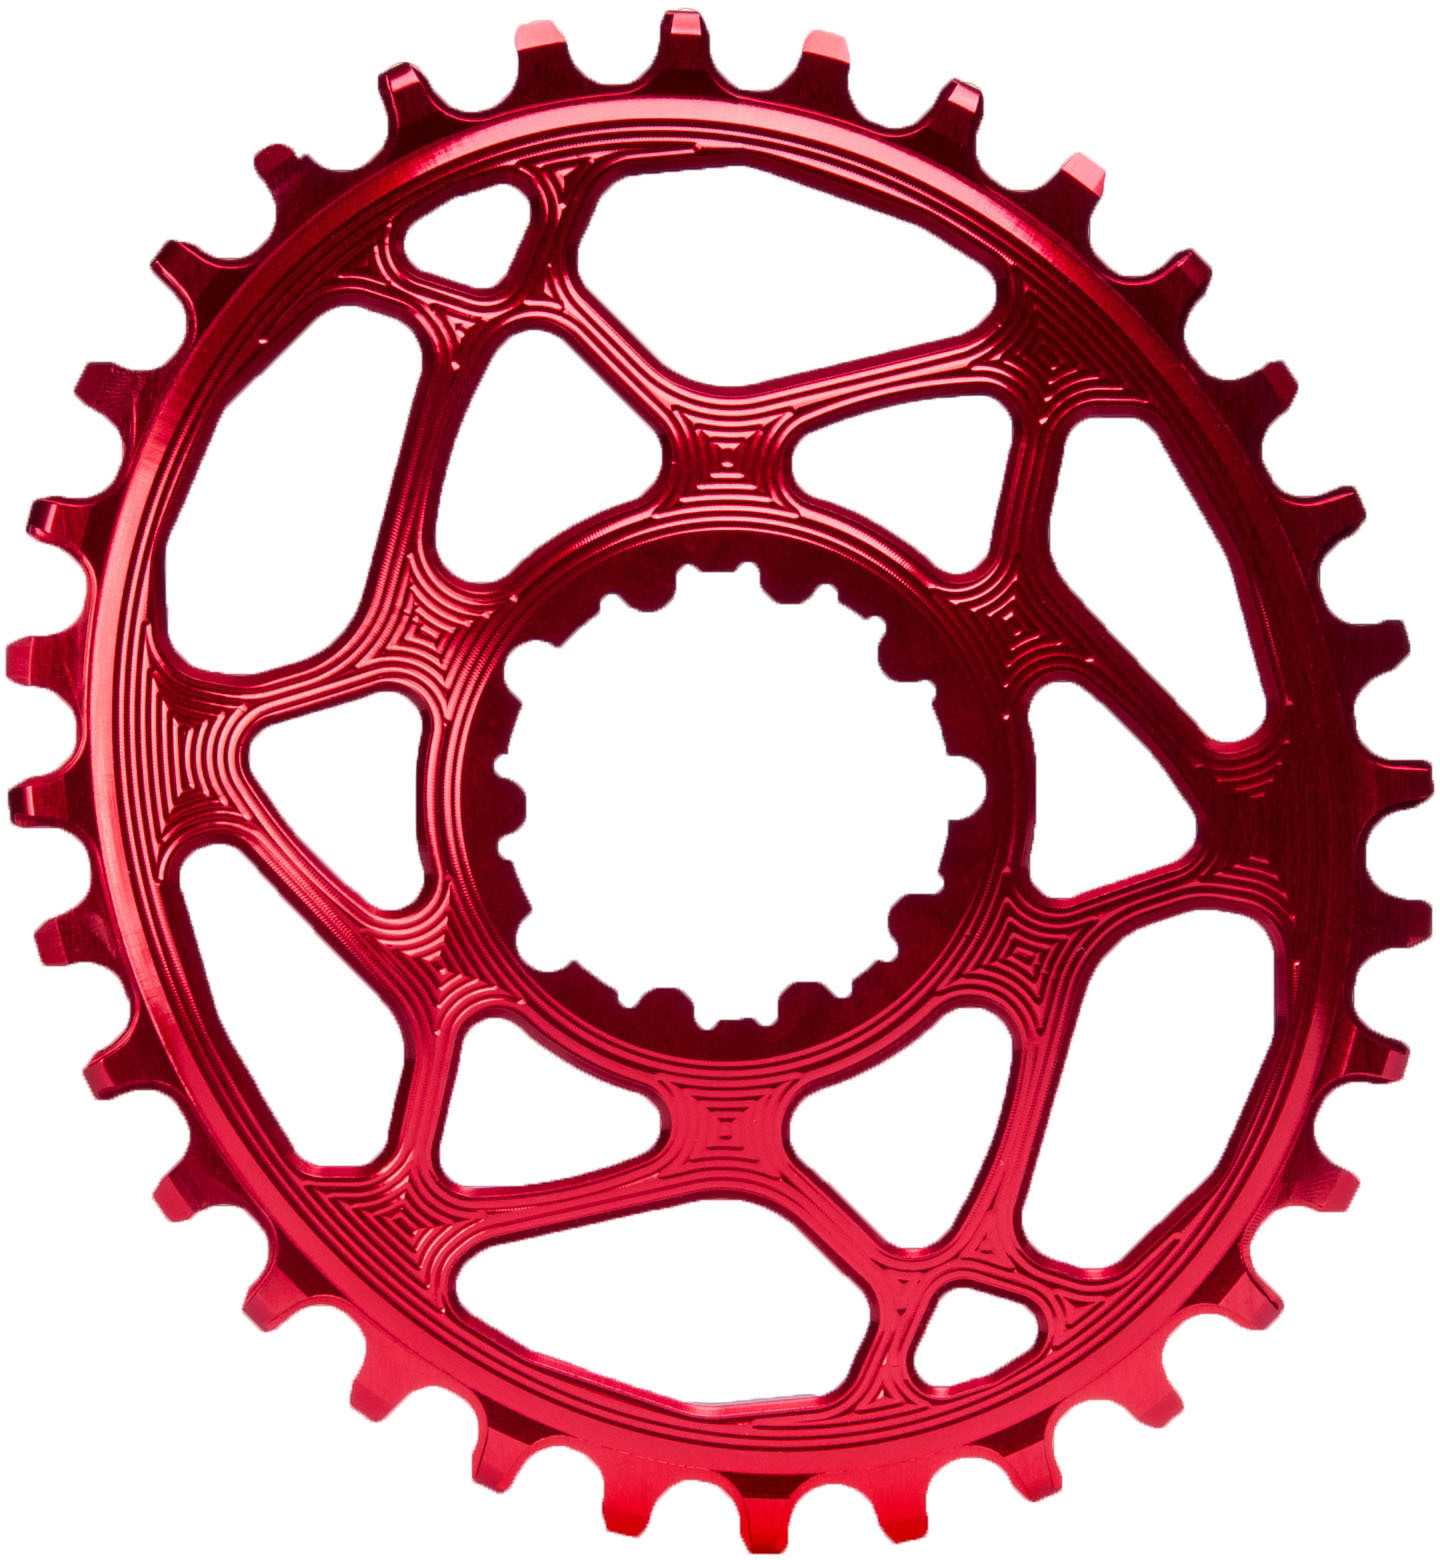 FRONT KLINGE ABSOLUTEBLACK OVAL NARROW-WIDE BOOST 148 RACE FACE CINCH 30T RØD | chainrings_component